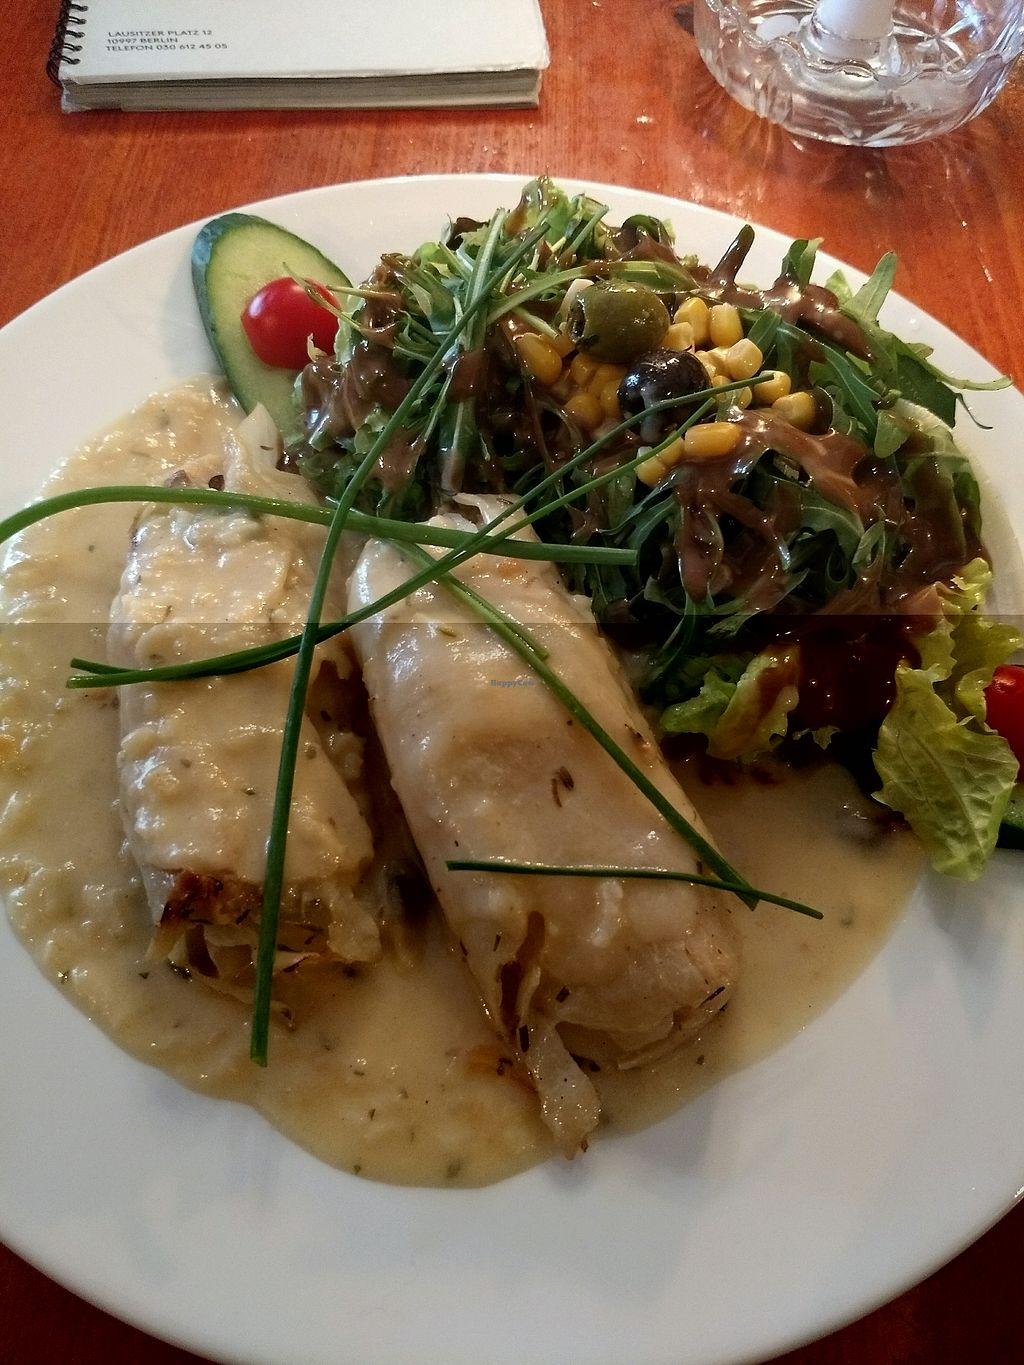 """Photo of Cafe V  by <a href=""""/members/profile/Cam"""">Cam</a> <br/>cabbage roulade <br/> November 24, 2017  - <a href='/contact/abuse/image/7568/328738'>Report</a>"""